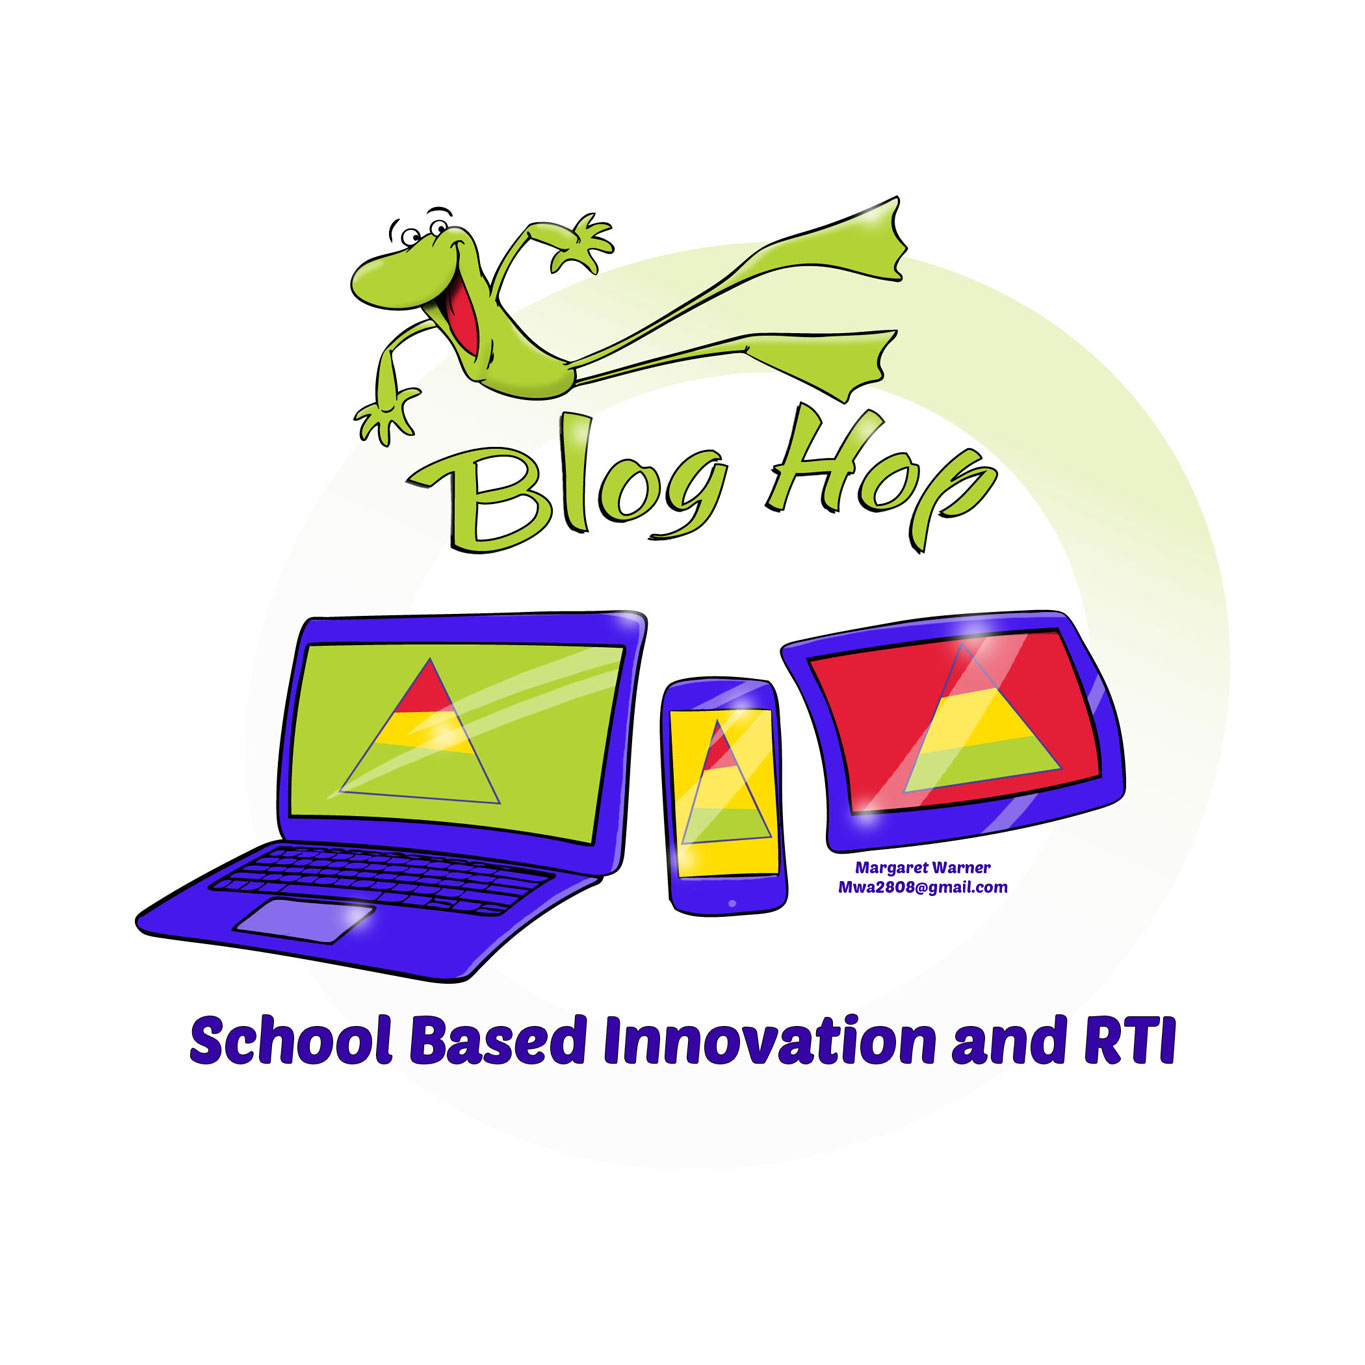 School Based Innovation & RTI (Response to Intervention) Blog Hop